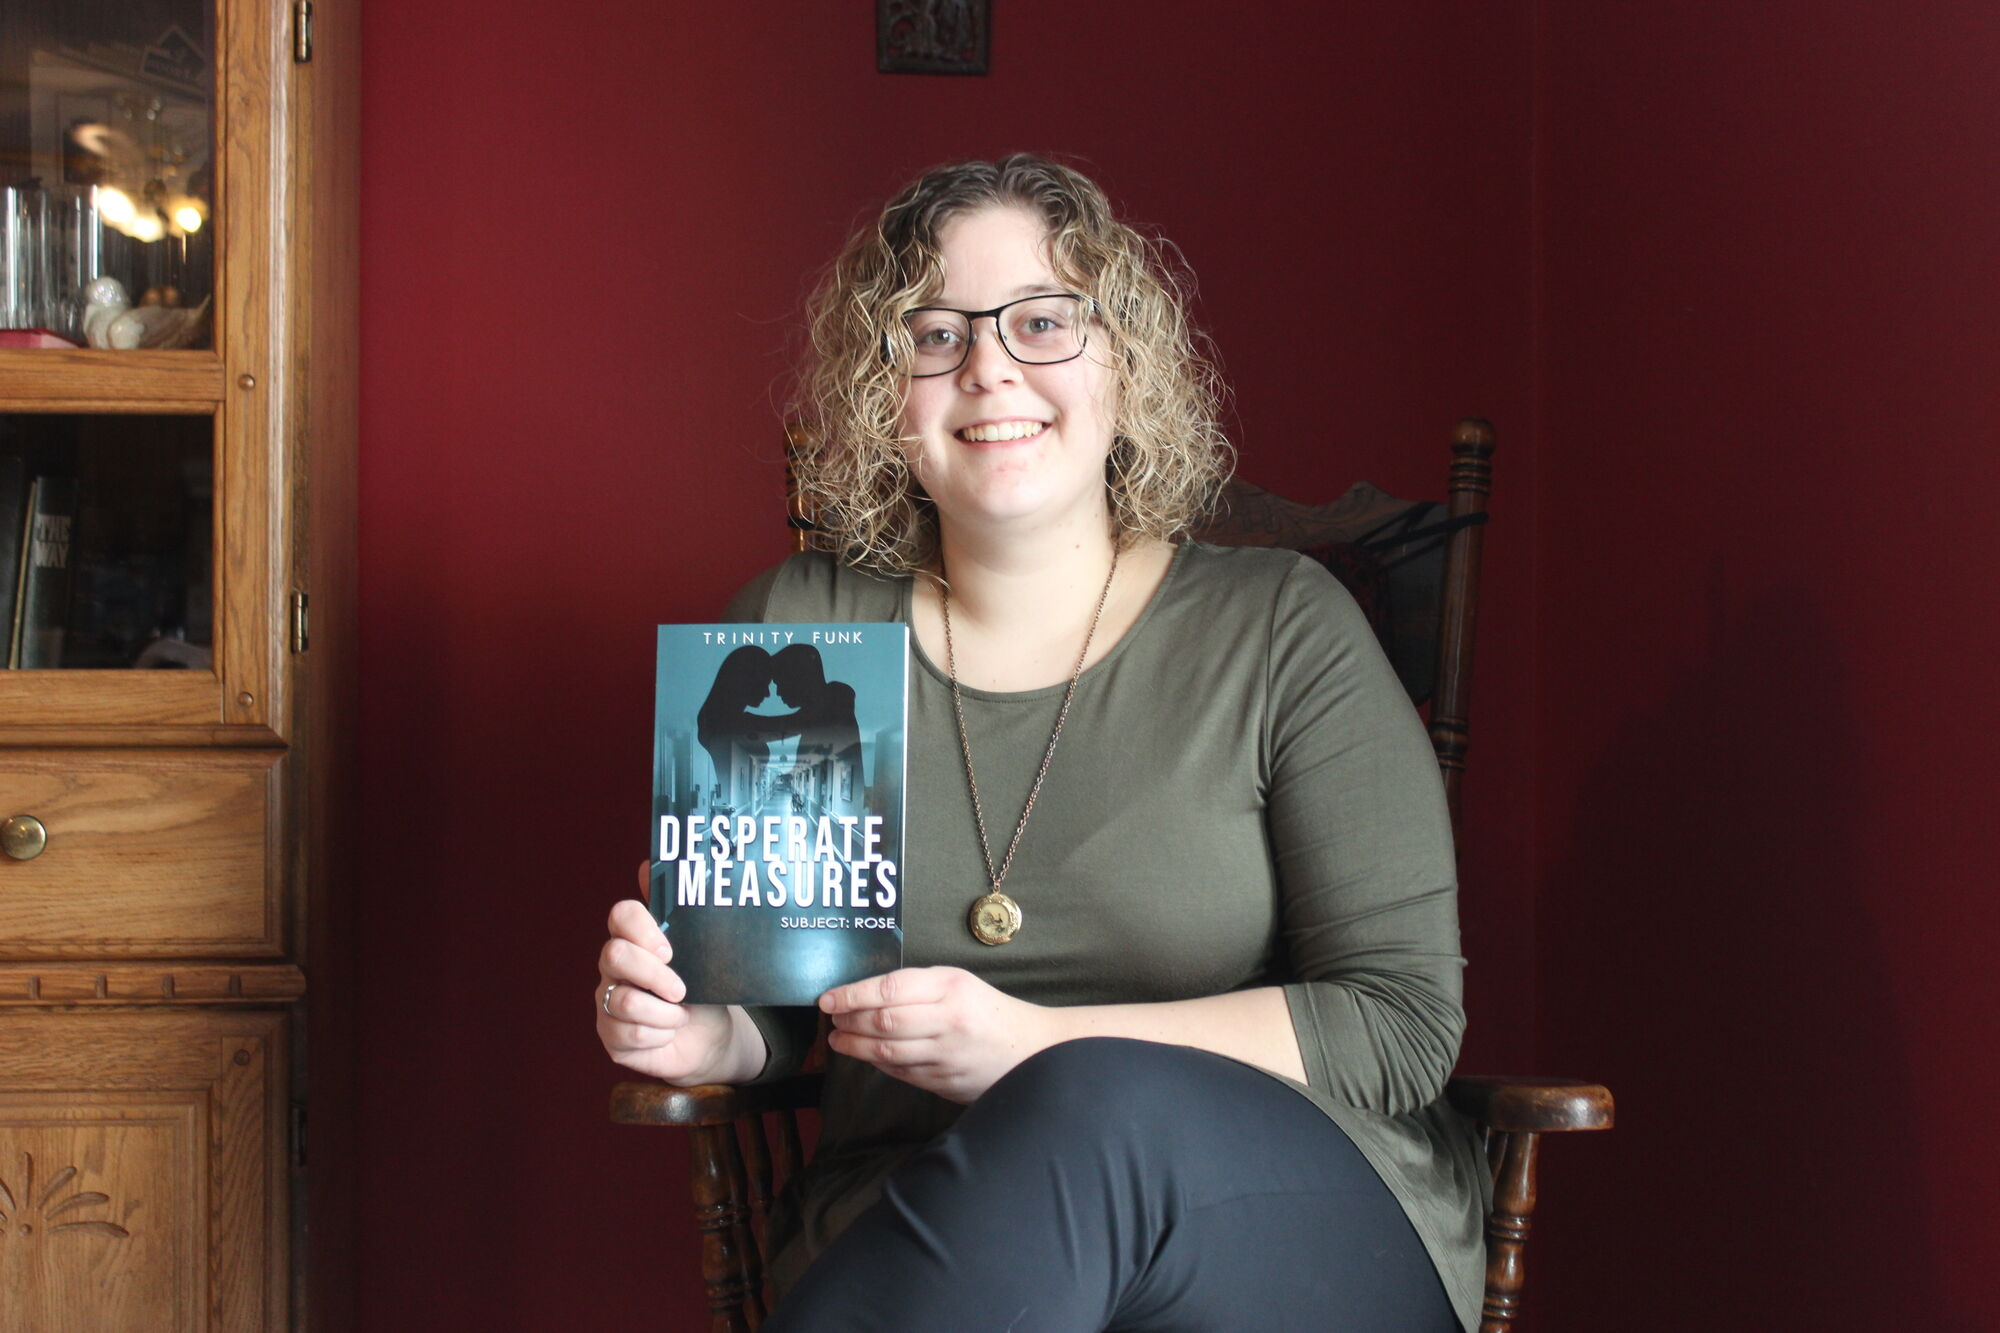 Blumenort author Trinity Funk holds a copy of the self-published young adult novel Desperate Measures: Subject: Rose. Funk, a University of Winnipeg education student, is promoting her first novel online and by word-of-mouth.